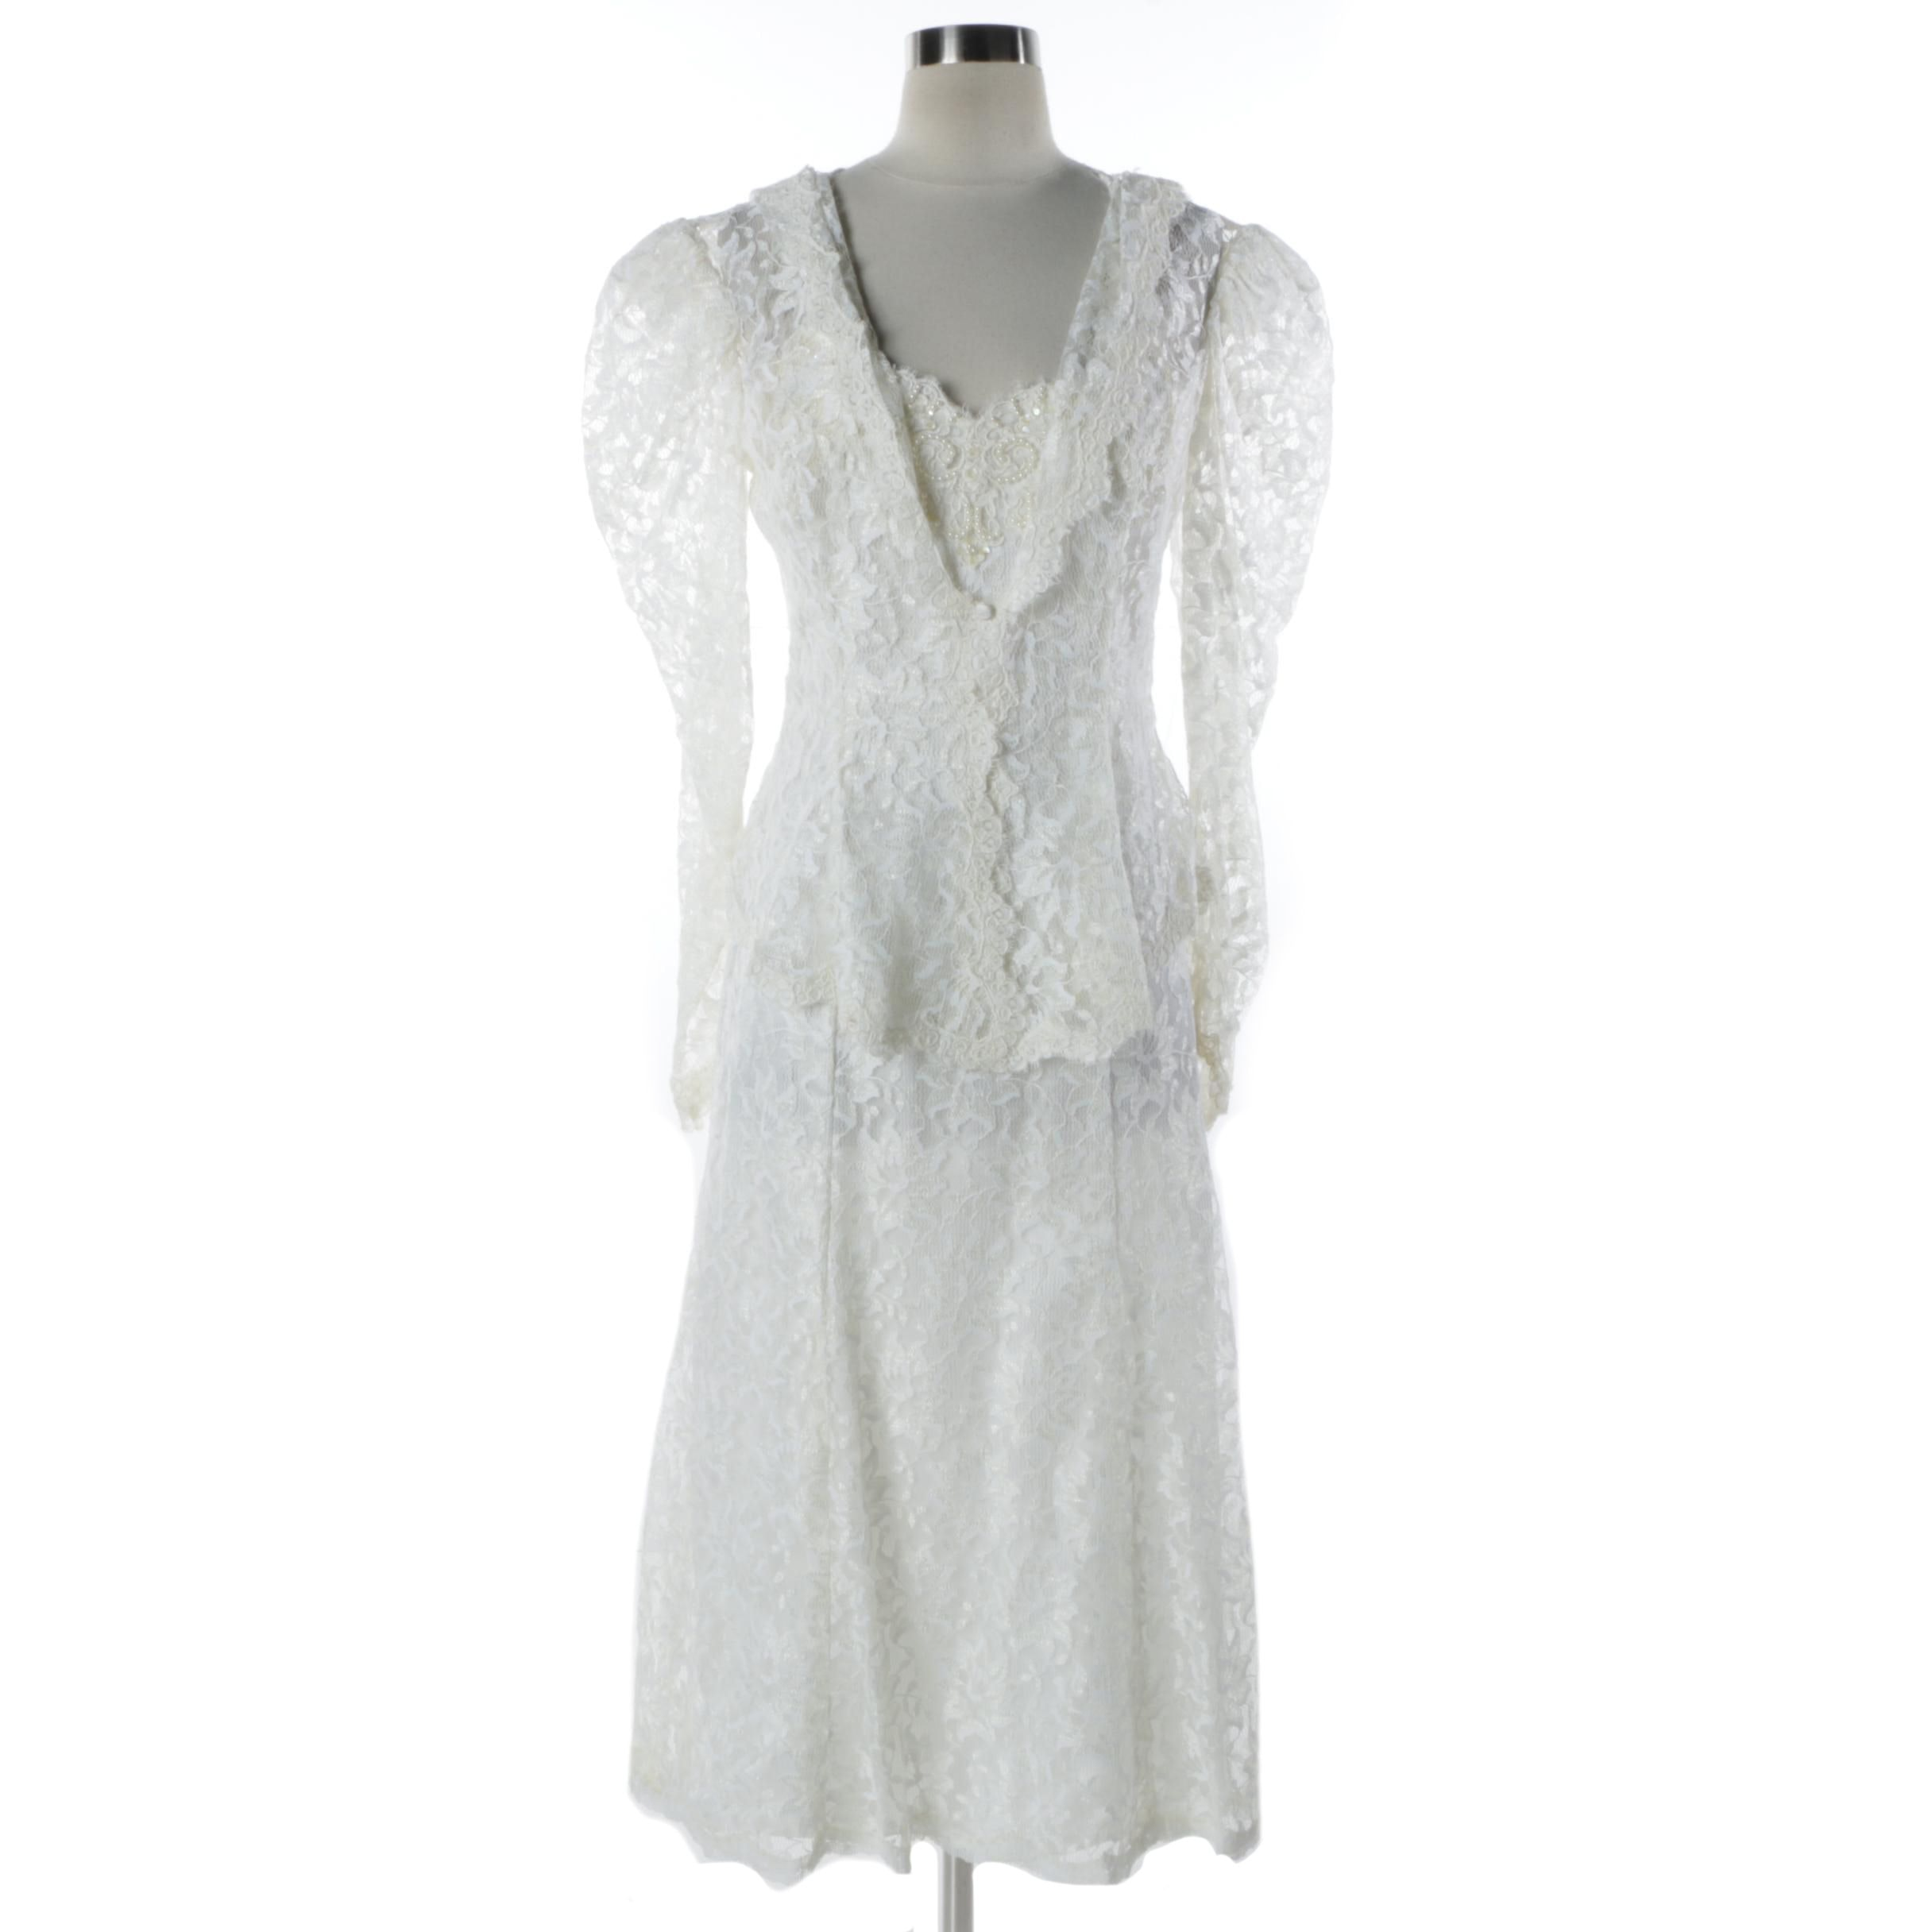 Vintage White Lace Slip Dress and Lace Hooded Jacket